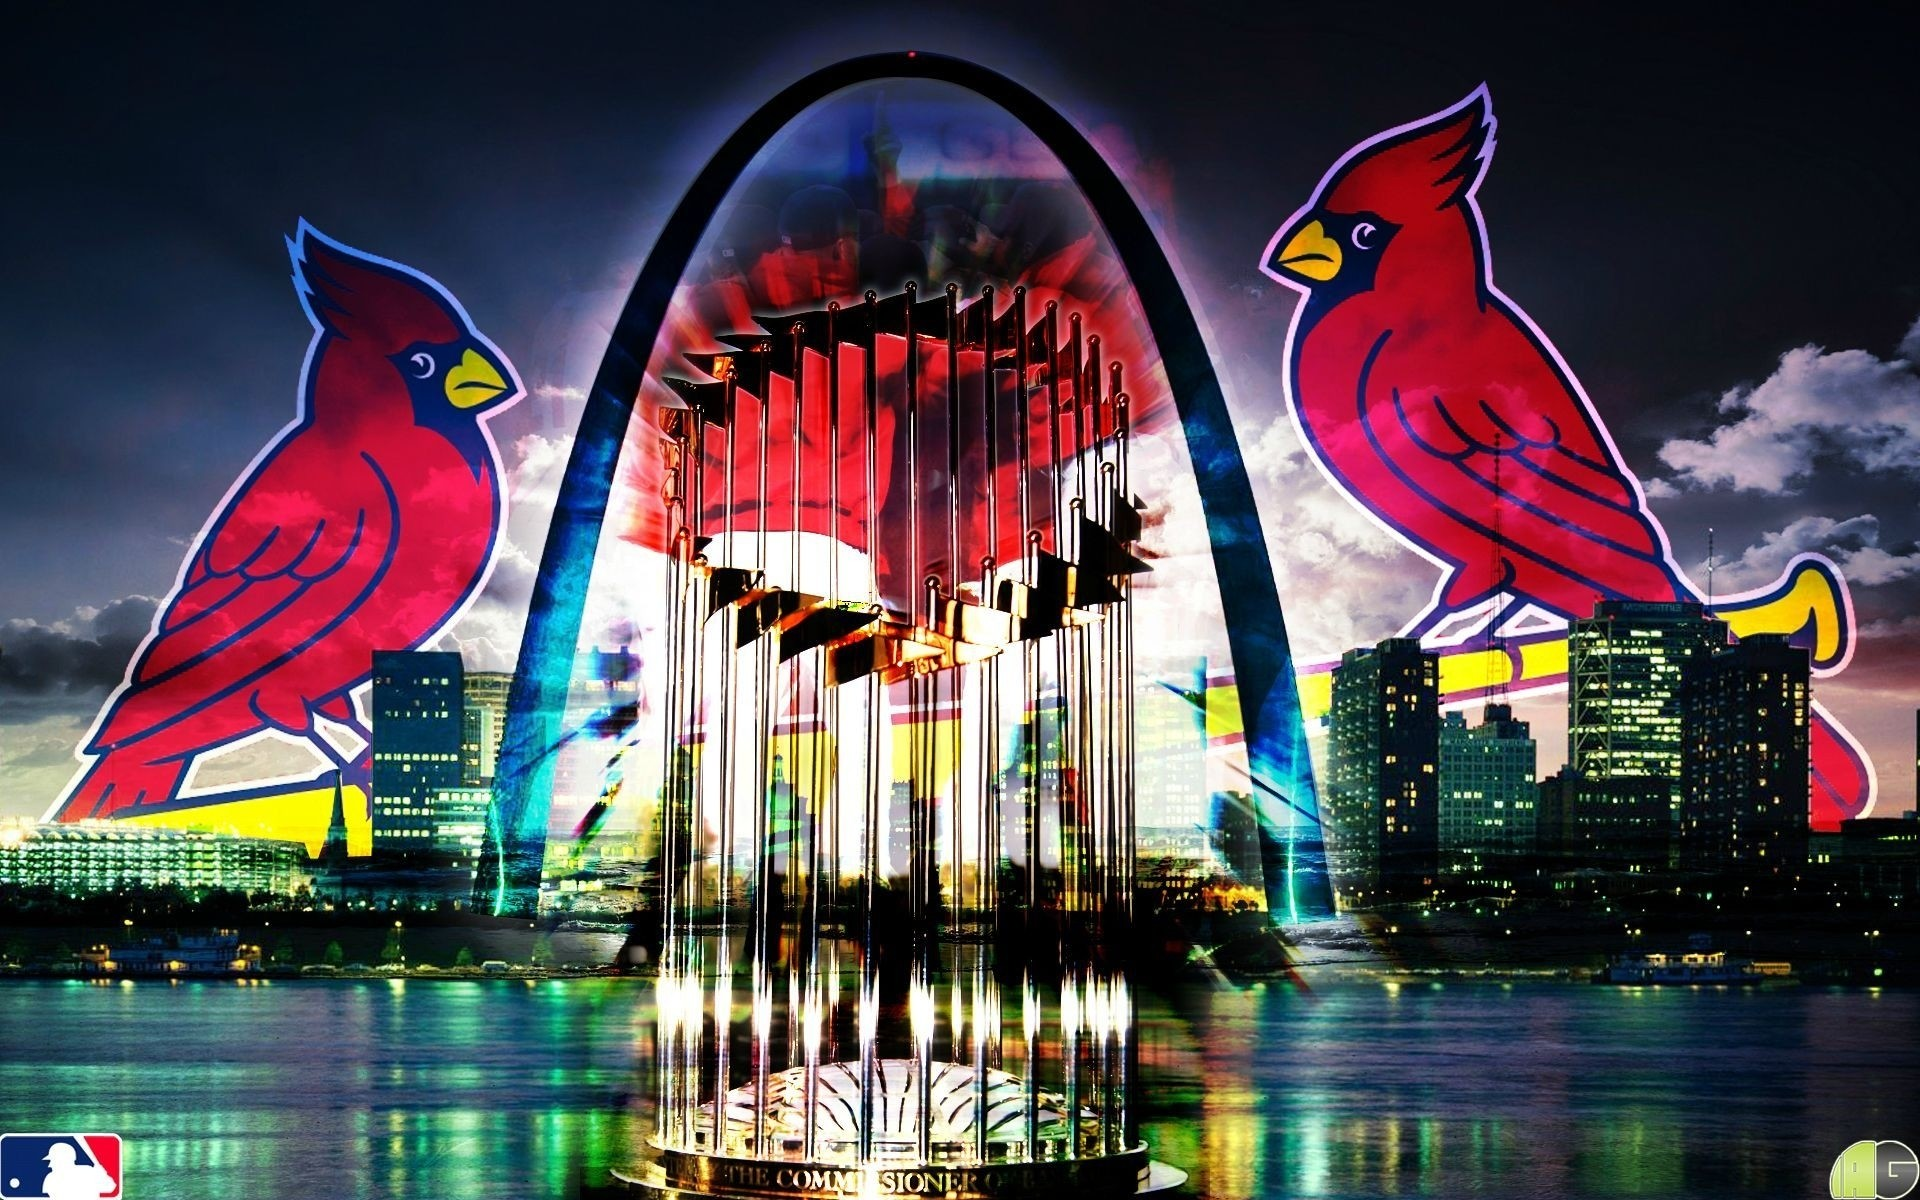 Res: 1920x1200, Title : st louis cardinals wallpaper image. – media file | pixelstalk.  Dimension : 1920 x 1200. File Type : JPG/JPEG